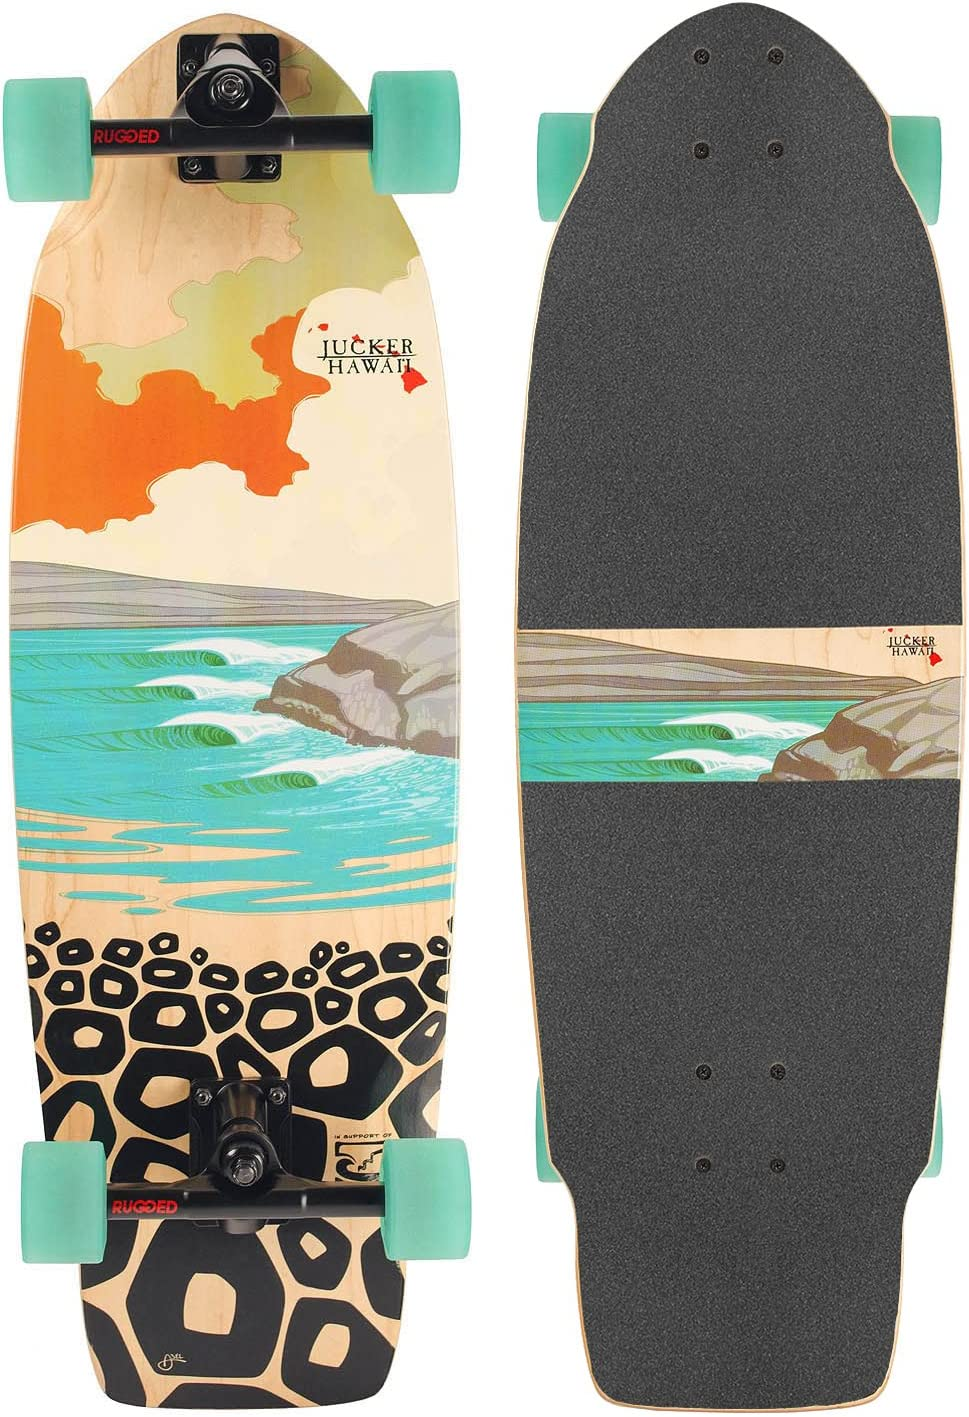 Skatesurfer ® Carving Skateboards de JUCKER HAWAII